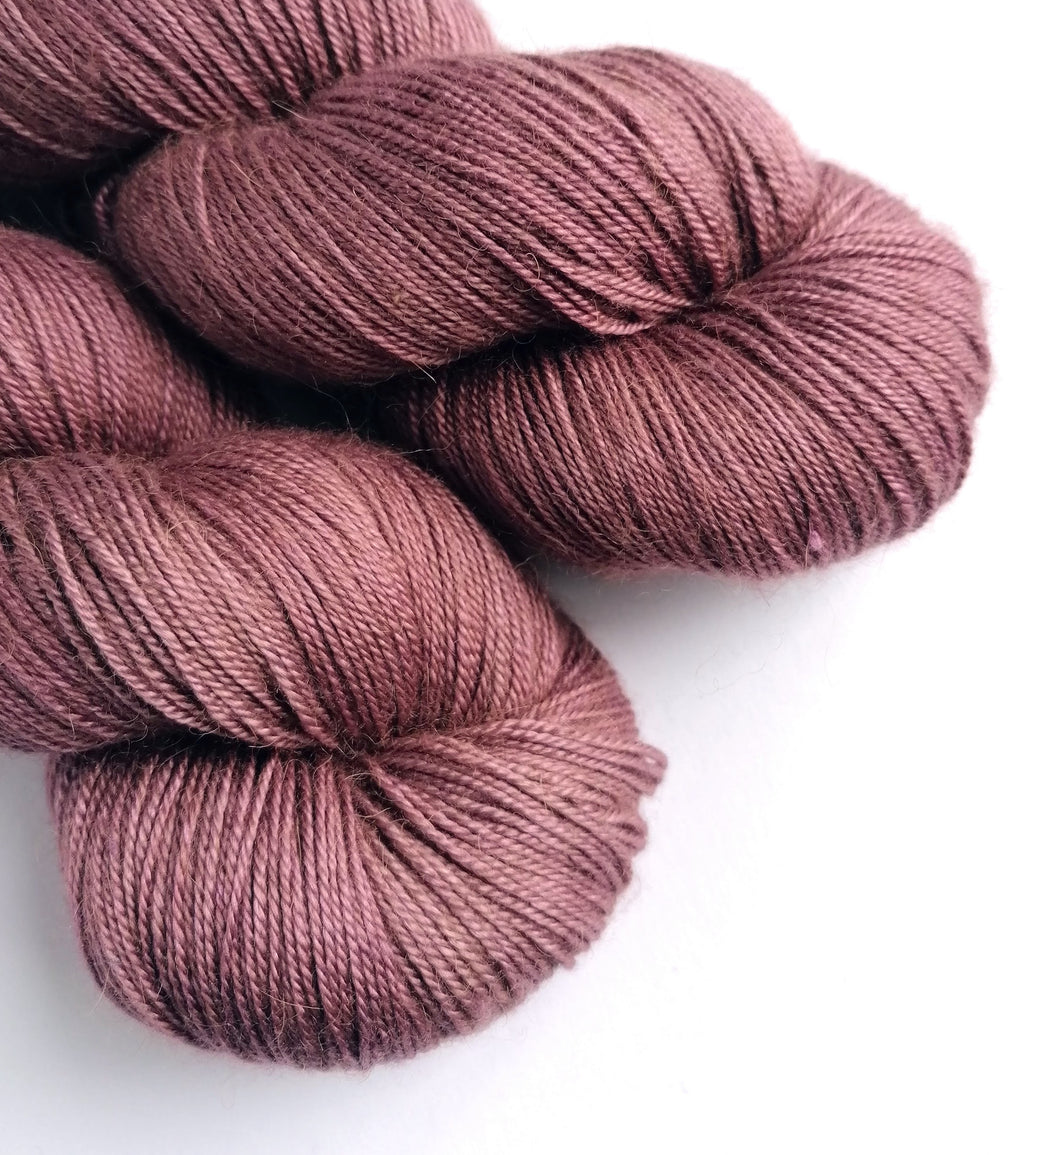 Hand dyed baby camel/silk 4ply/fingering weight yarn, in a dusky pink-brown semi-solid.